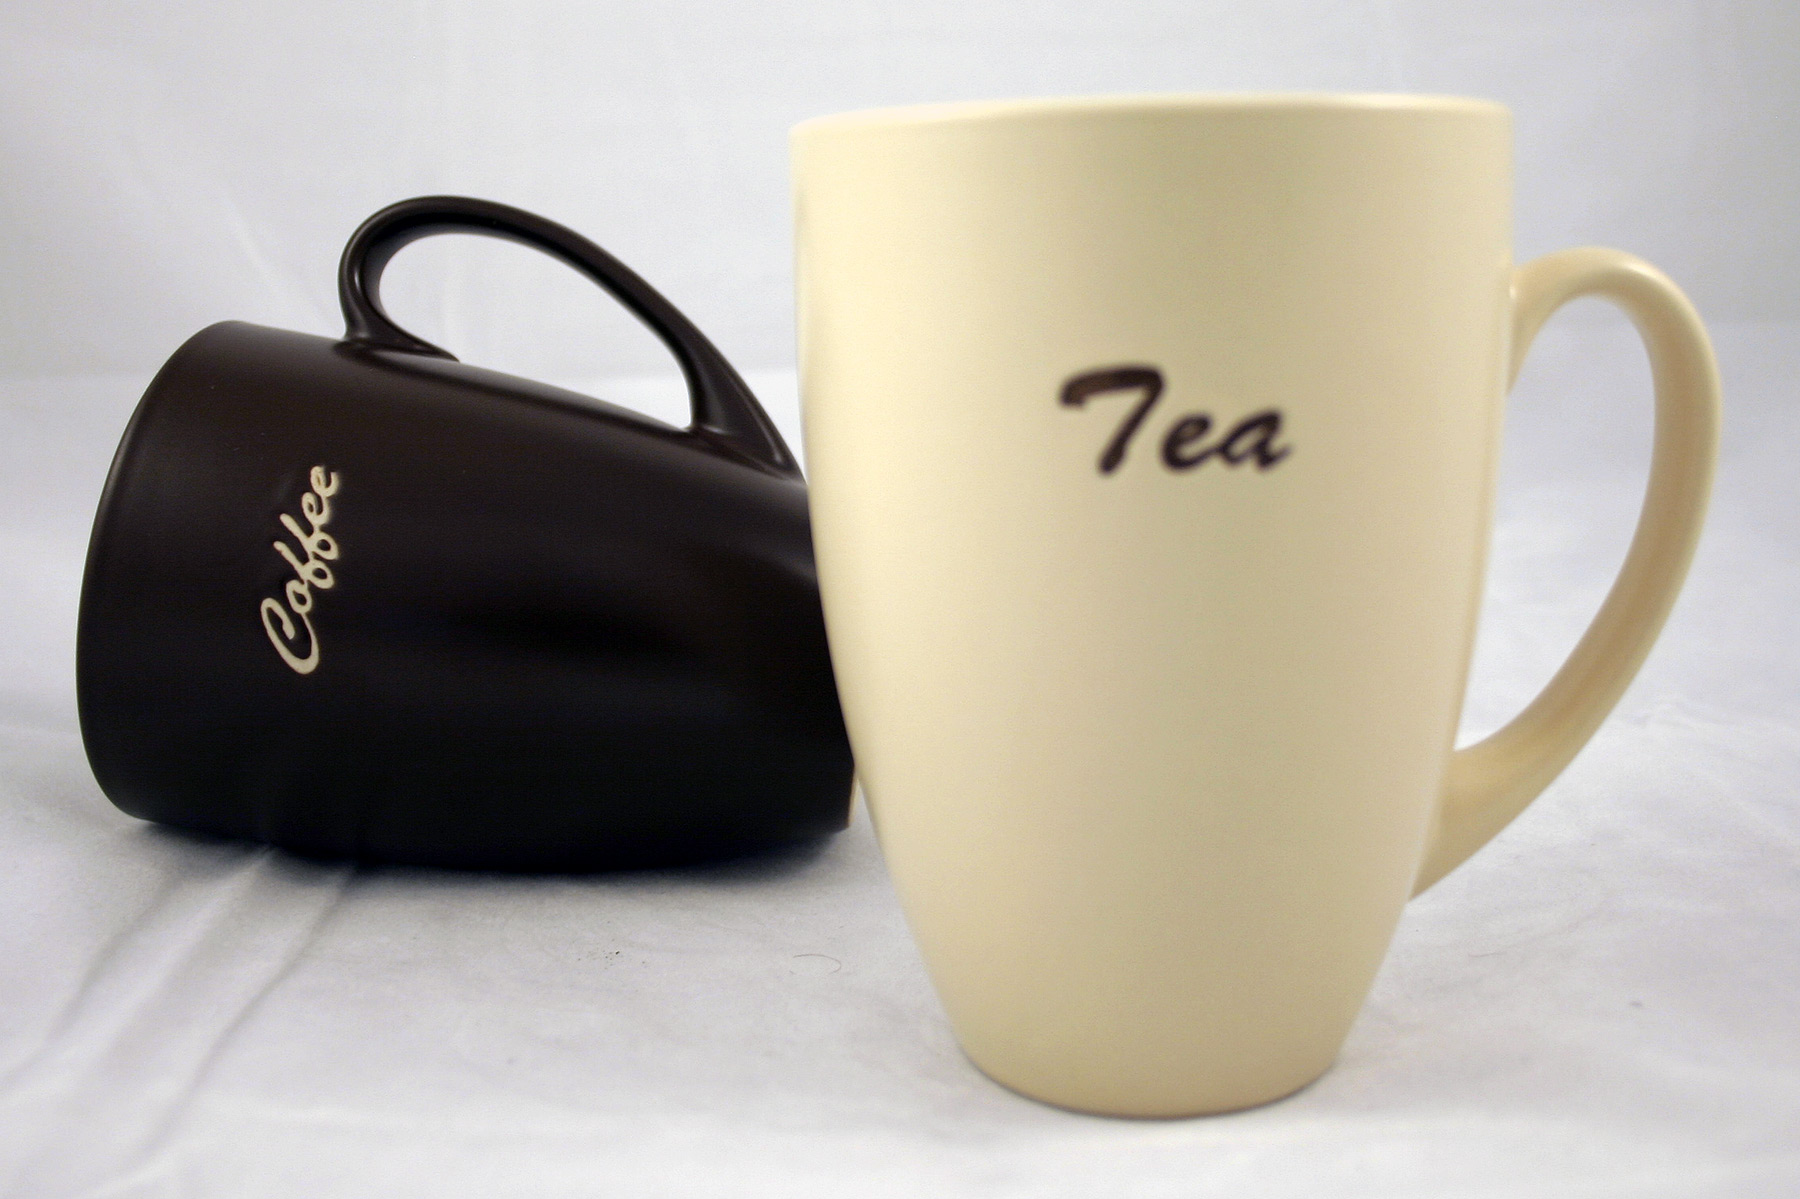 Tea and coffee mug photo